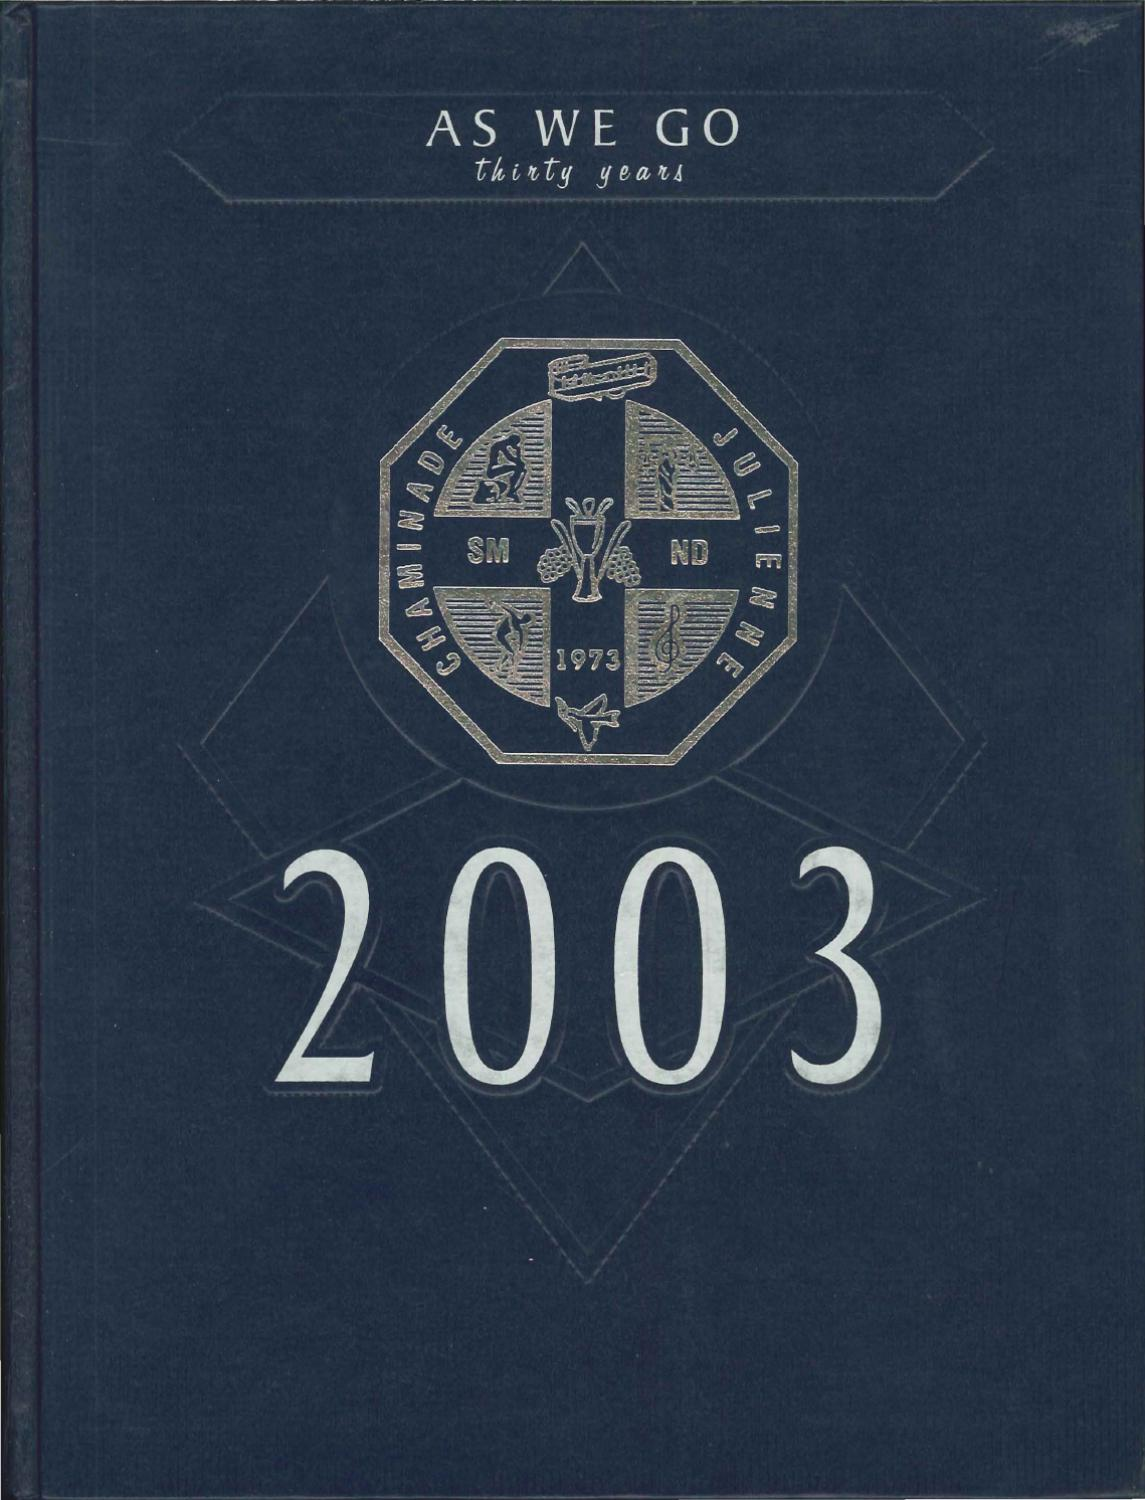 Chaminade Julienne High School Yearbook 2003 By Chaminade Julienne Catholic High School Issuu